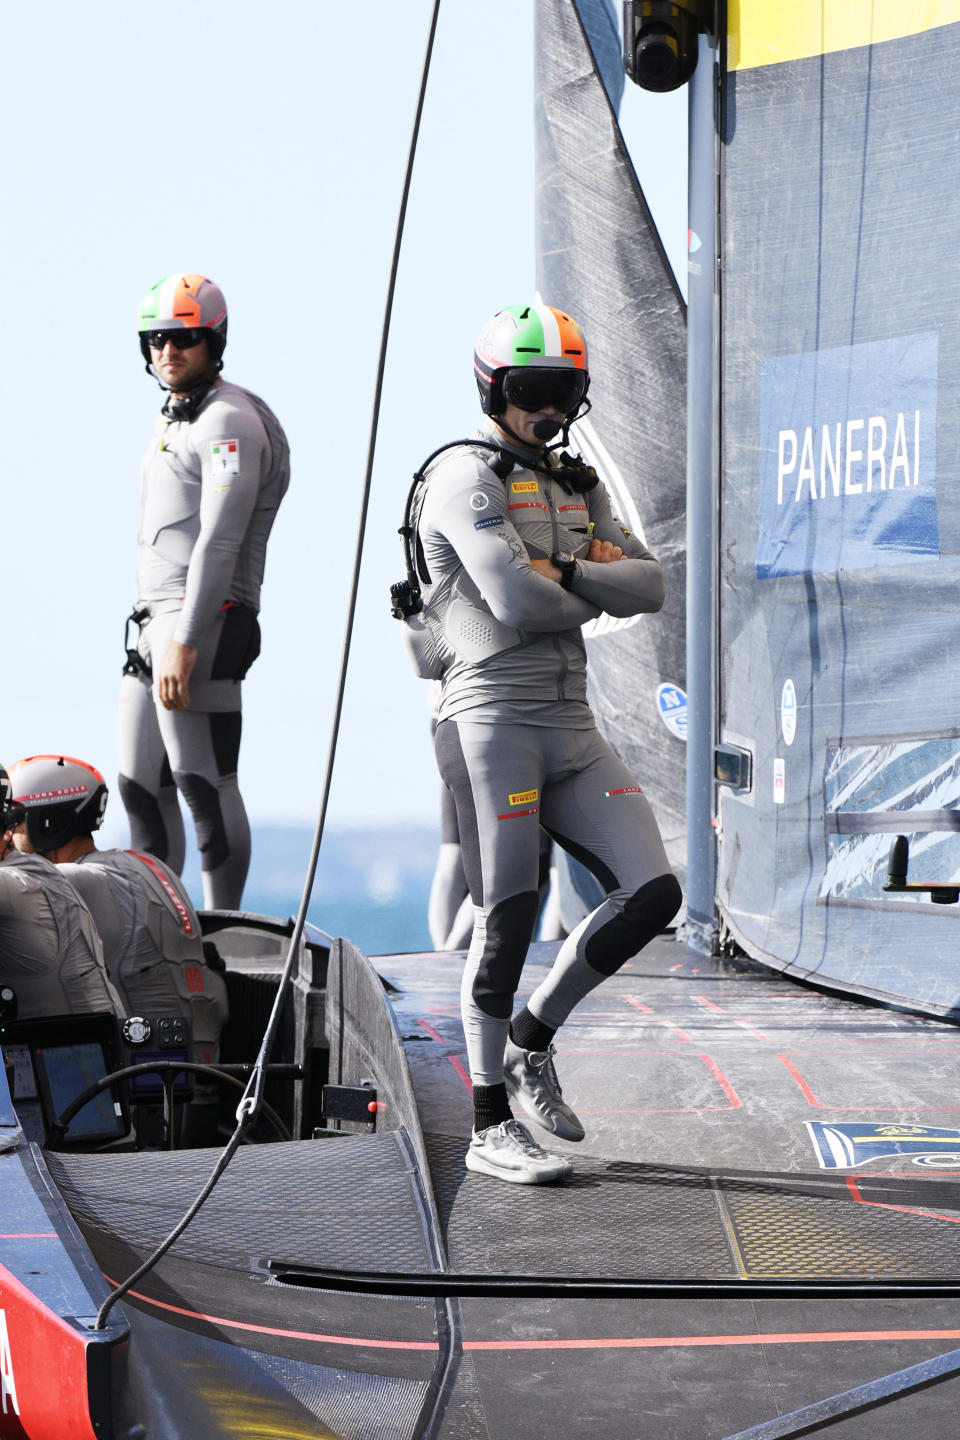 Jimmy Spithill, right, of Italy's Luna Rossa waits during a postponement of race 7 against Team New Zealand in the America's Cup on Auckland's Waitemata Harbour, New Zealand, Sunday, March 14, 2021. (Chris Cameron/Photosport via AP)